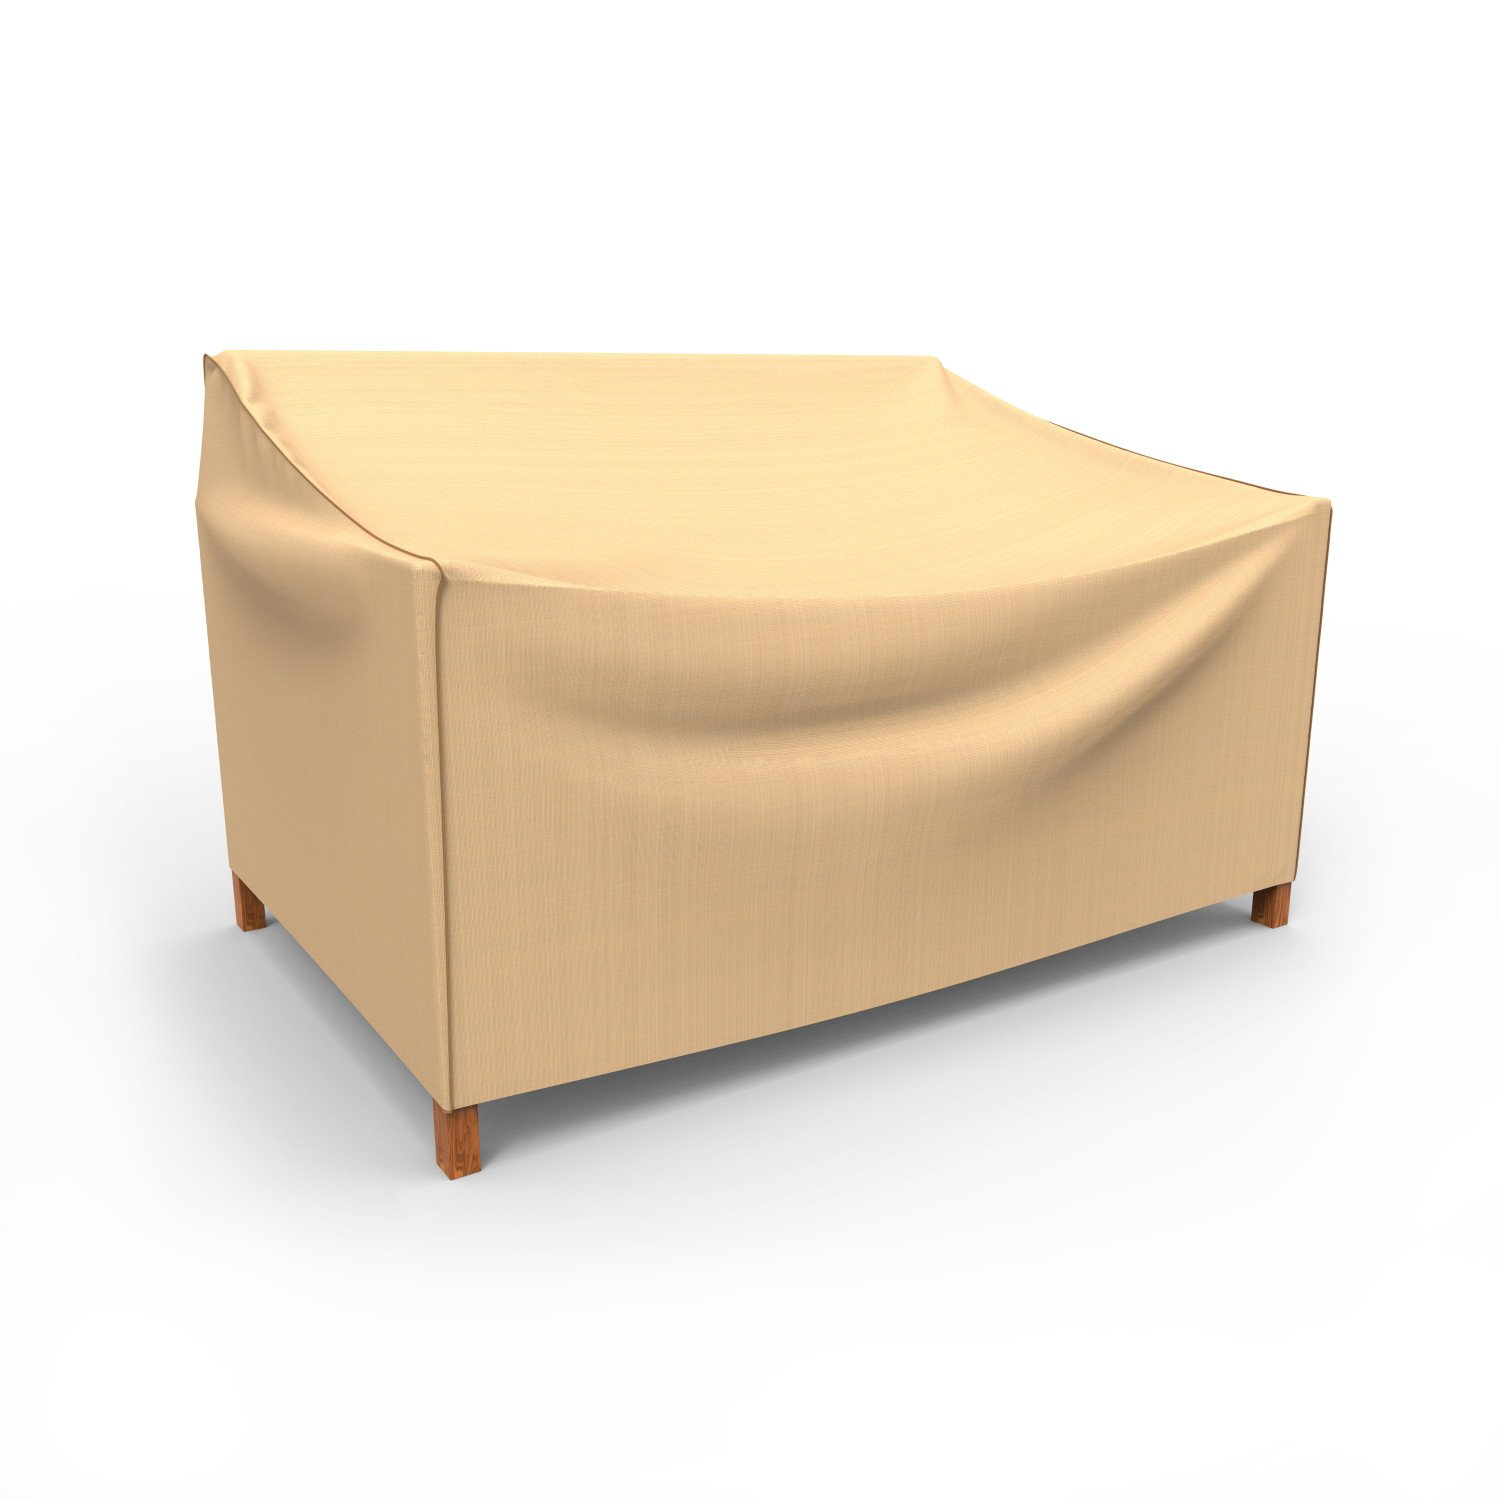 Budge P3A03TNNW1 Outdoor Patio Loveseat Cover-Small Rust-Oleum Neverwet Furniture, 26'' x 50'' W x 29'' deep, Tan